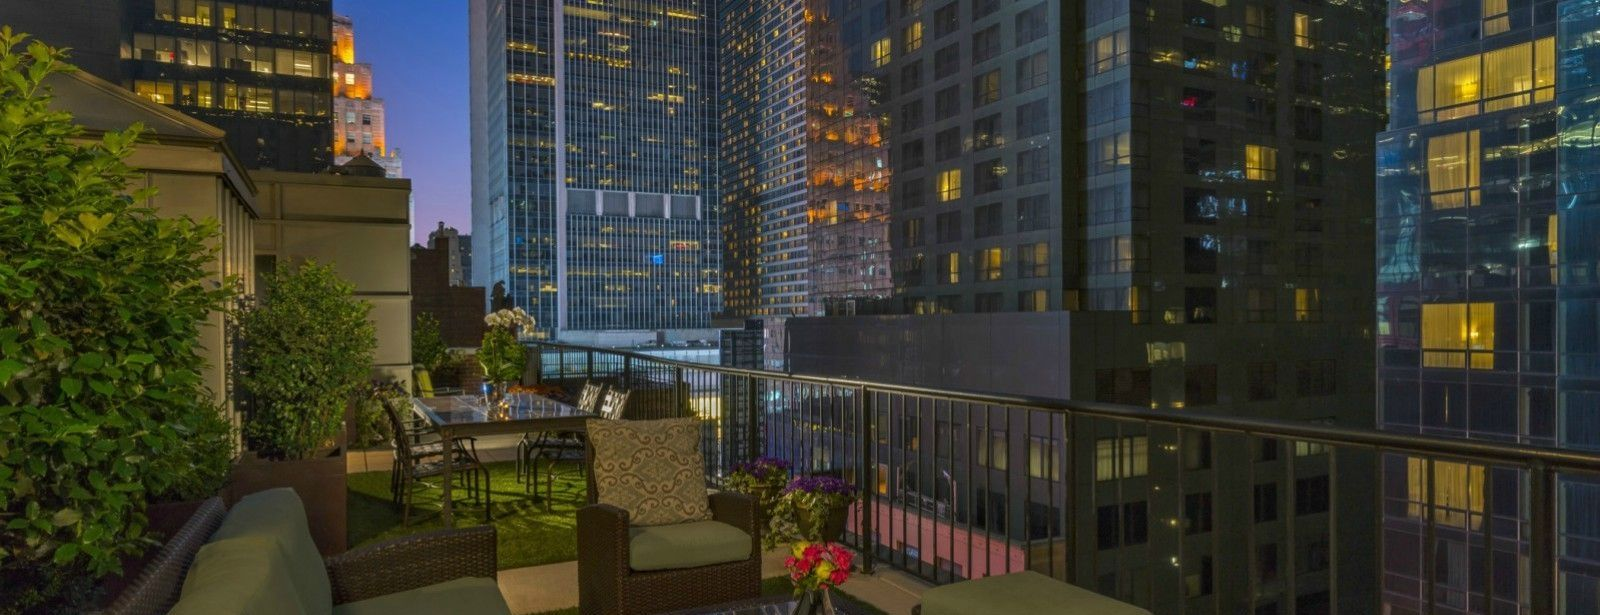 Producer Suite Terrace | The Chatwal, a Luxury Collection Hotel, New York City